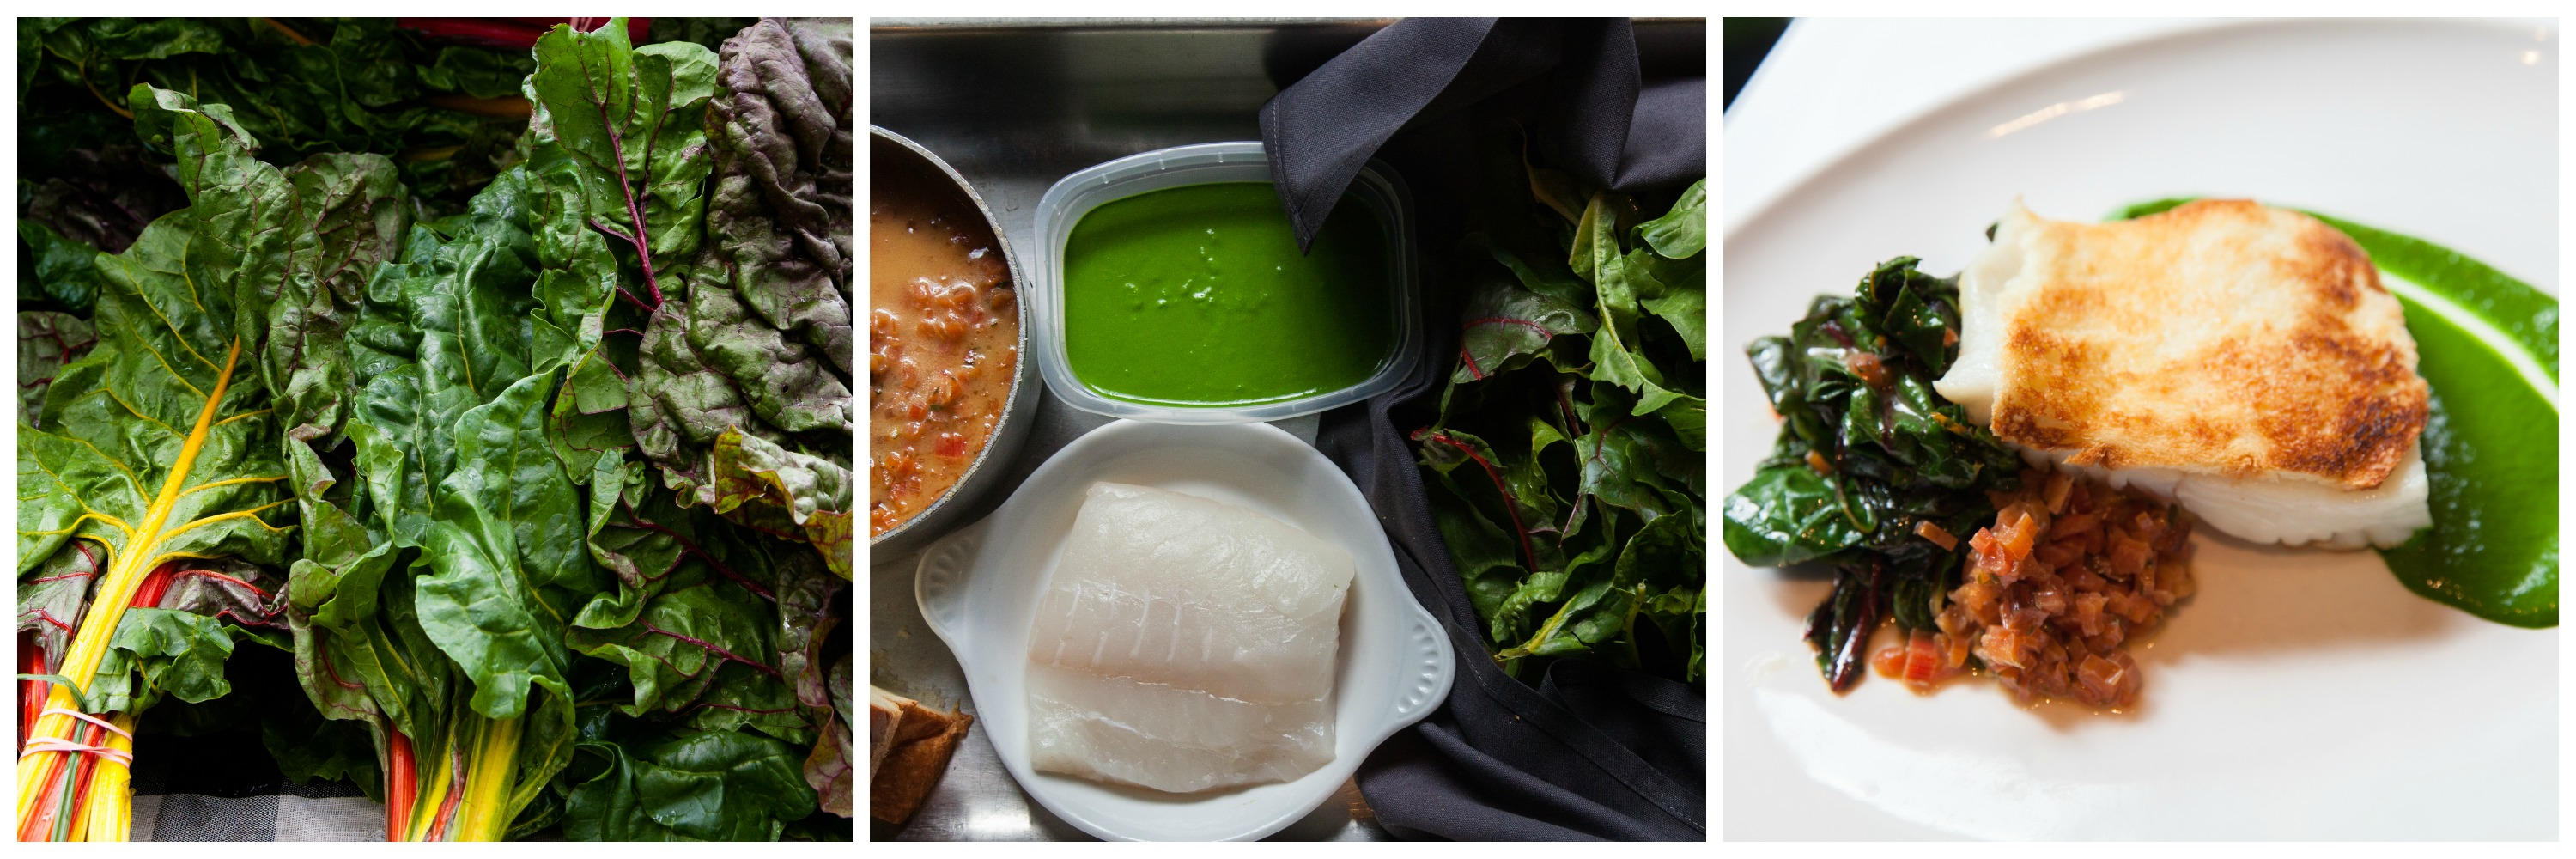 raw chard (left), ingredients to make a dish (middle) and composed dish (right)